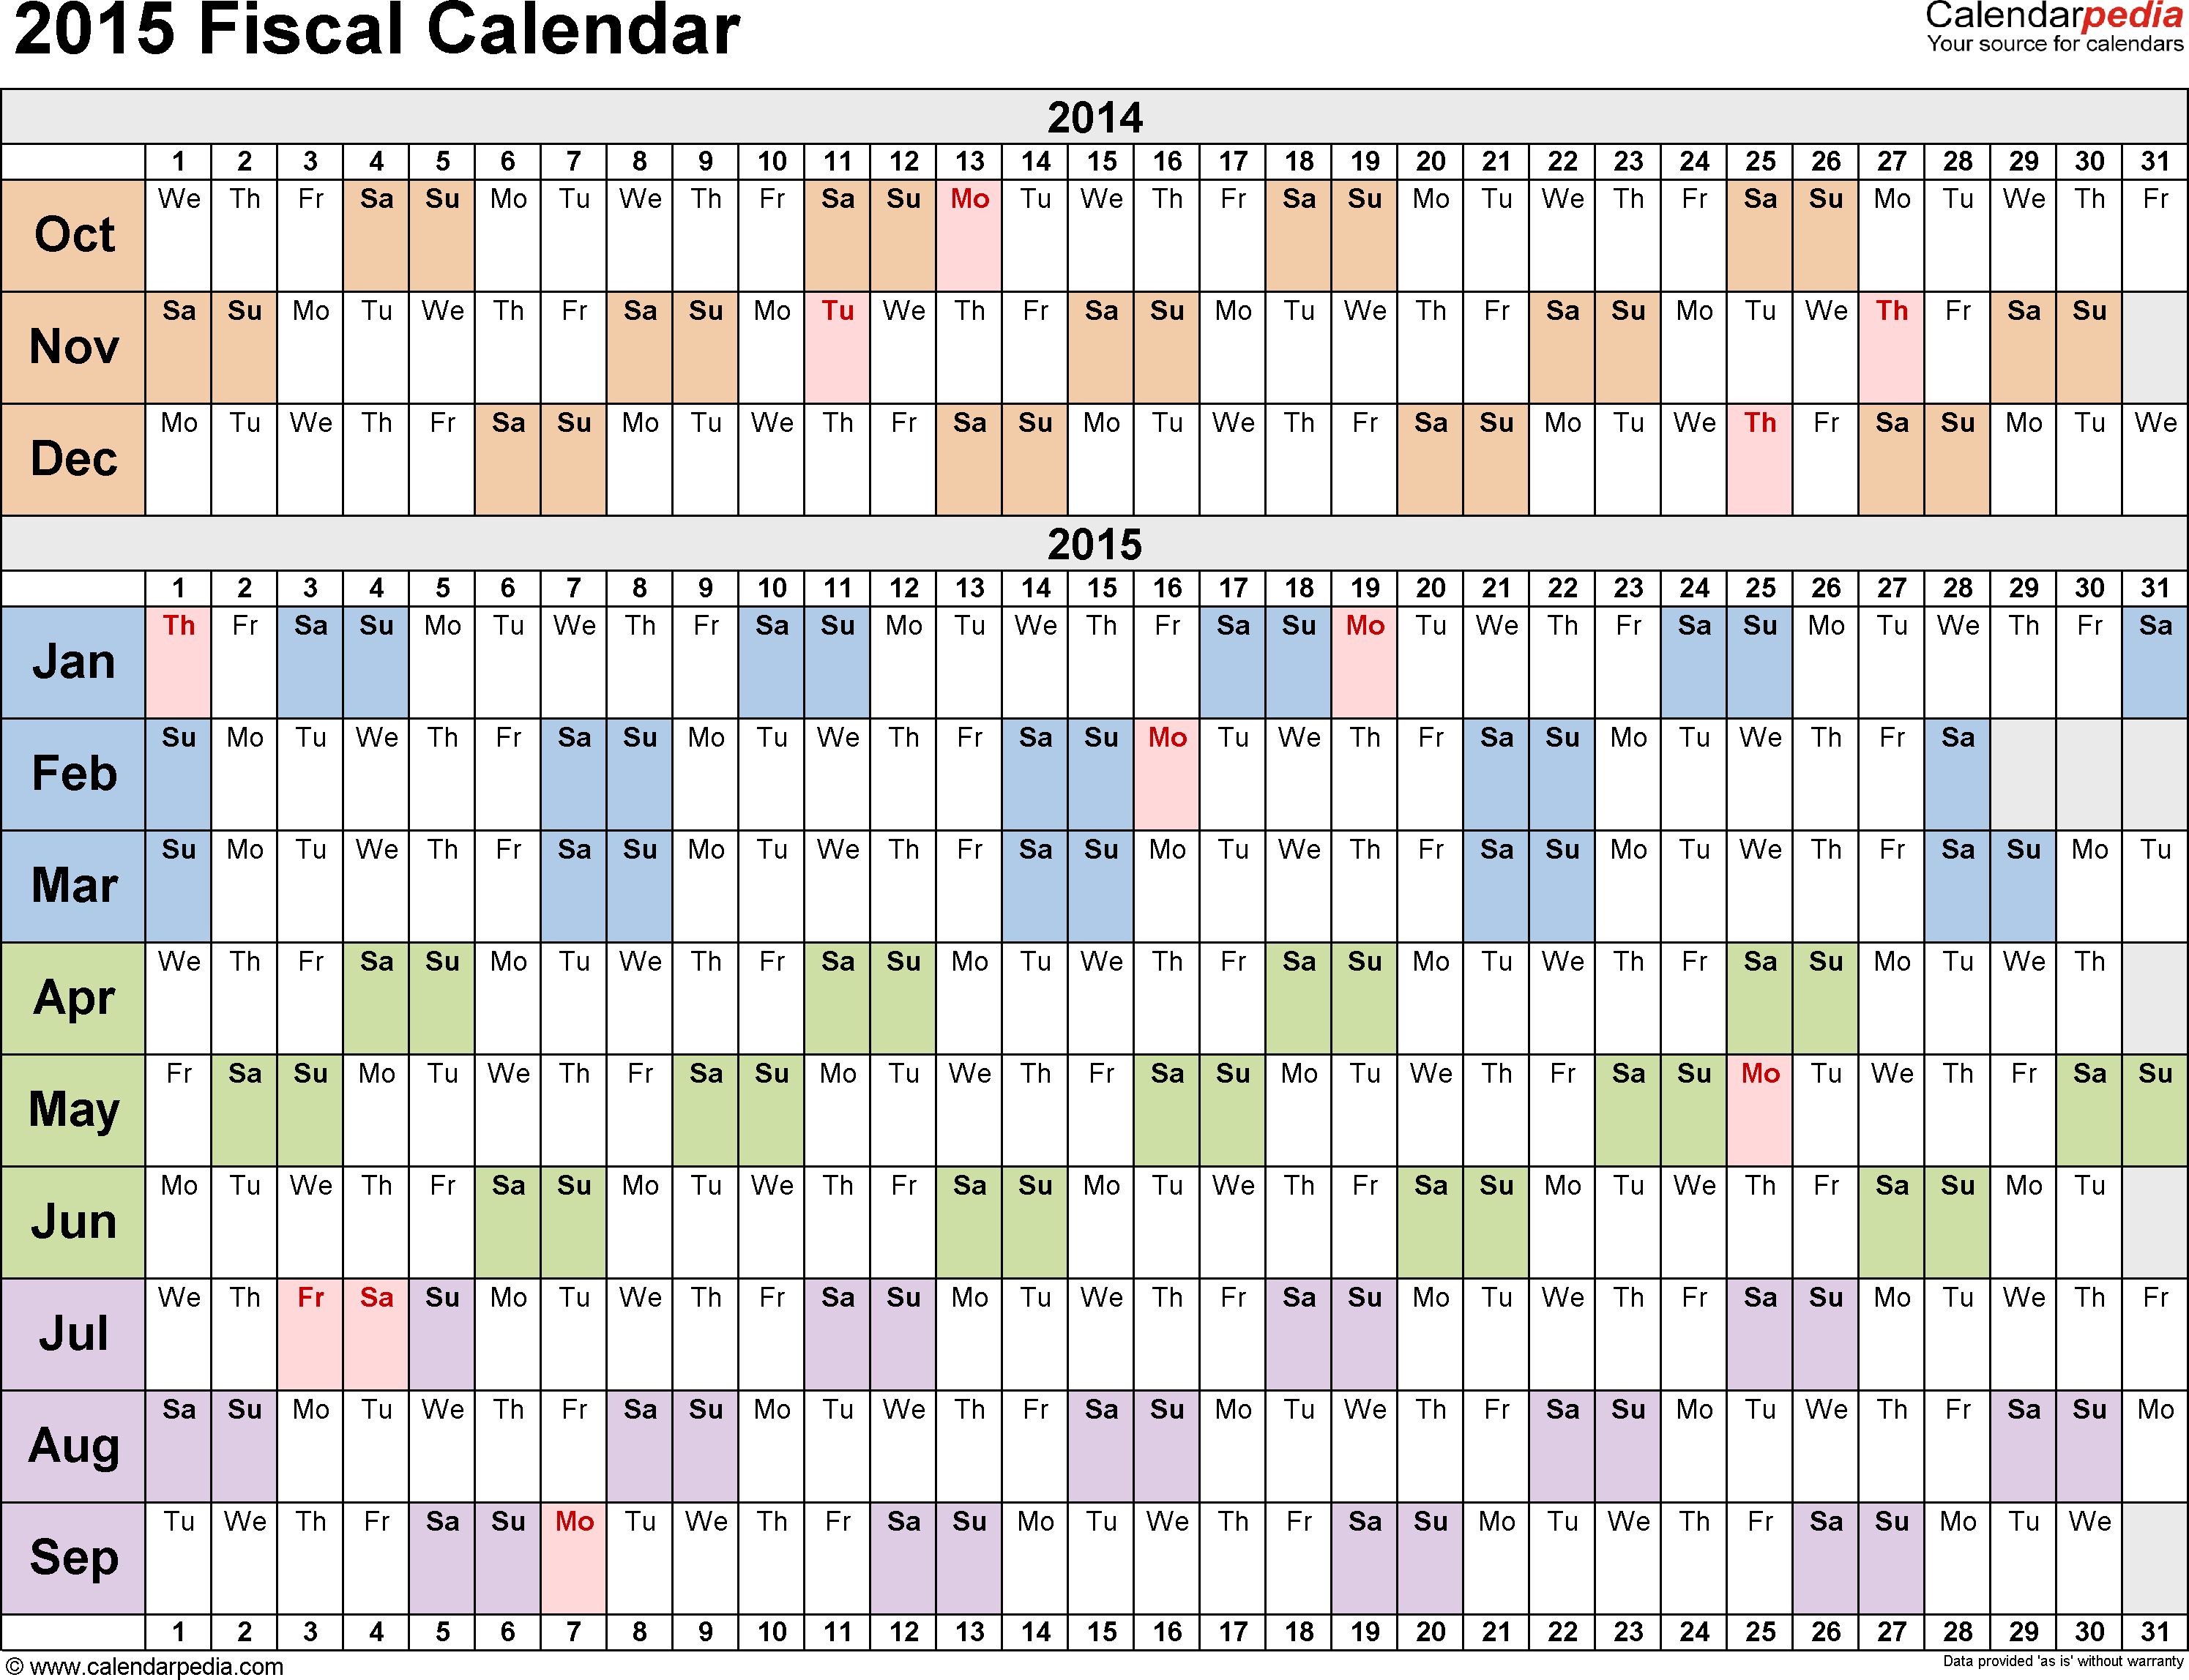 Template 2: Fiscal year calendar 2015 for PDF, landscape orientation, days horizontally (linear), 1 page